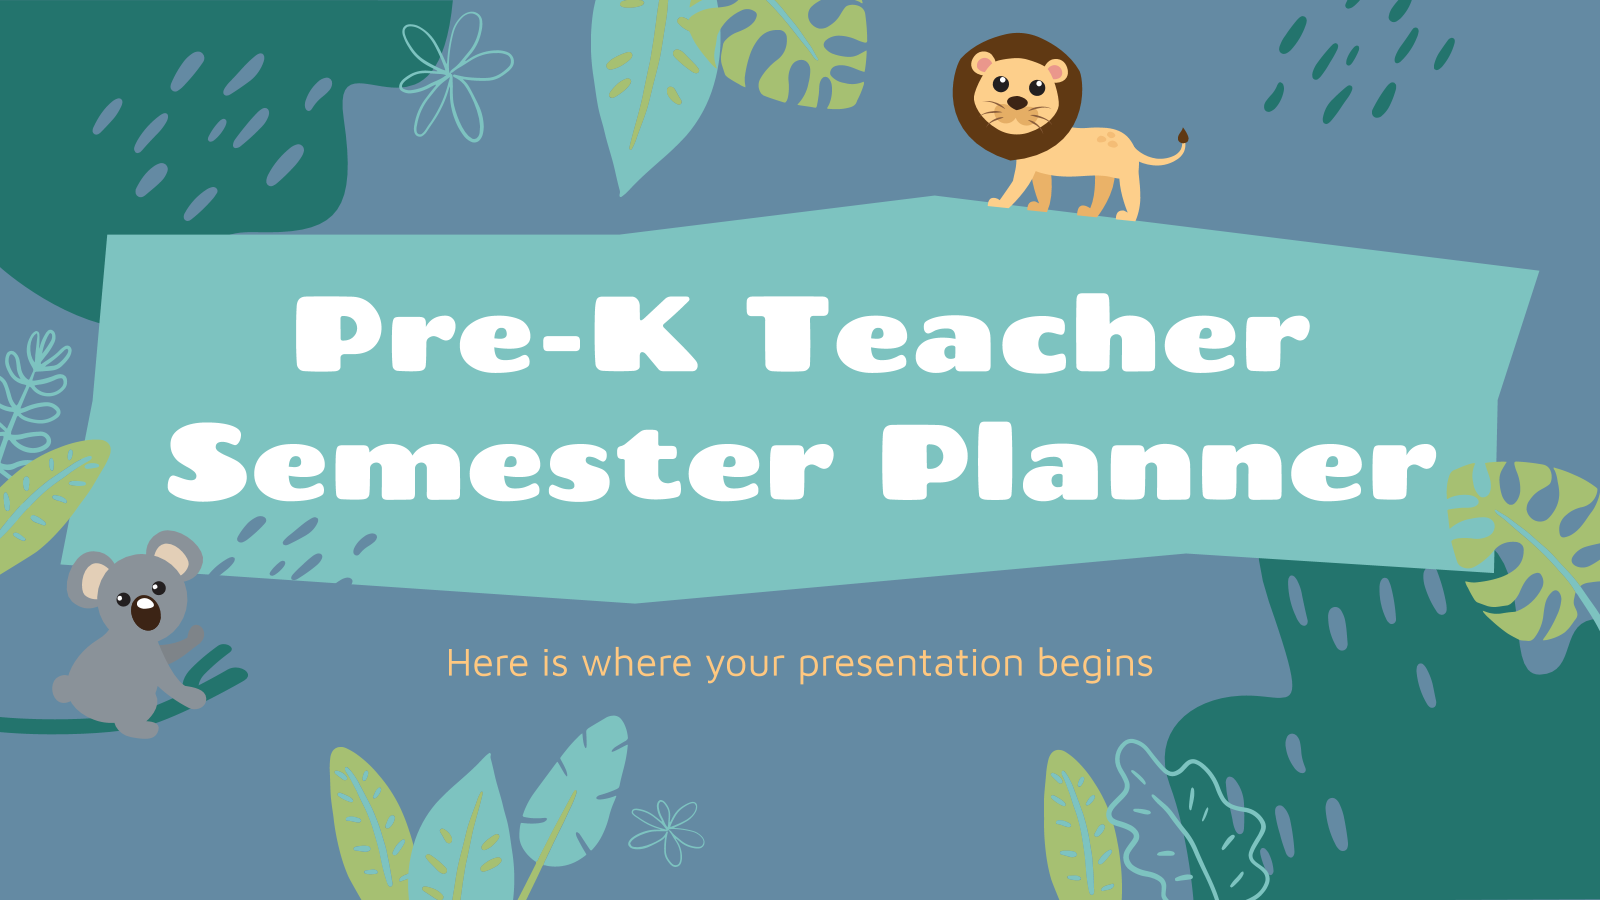 Pre-K Teacher Semester Planner presentation template